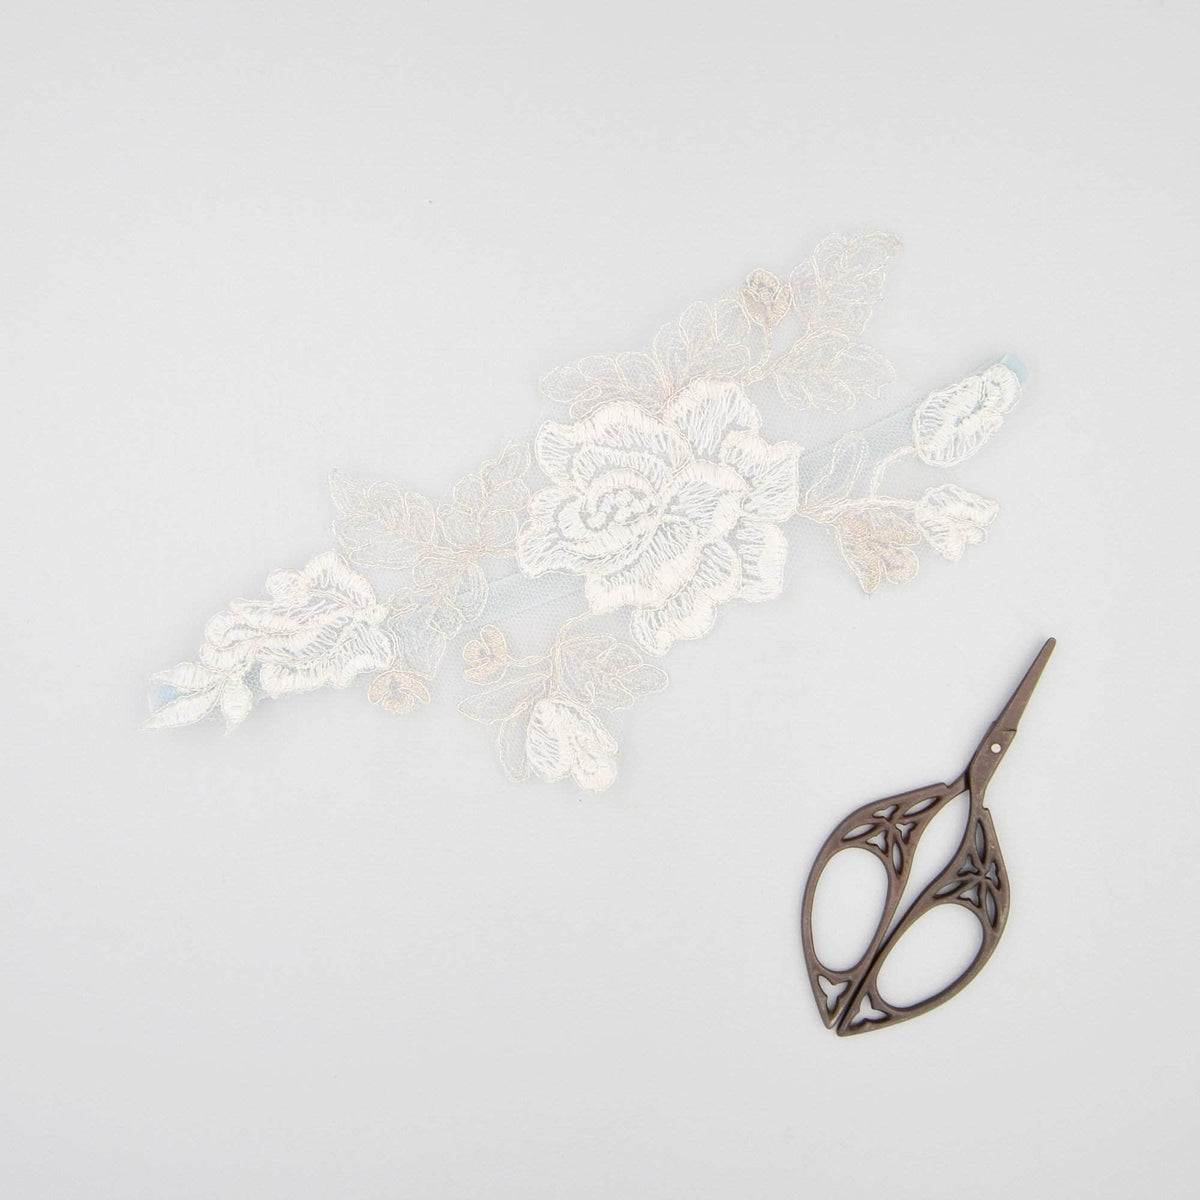 Wedding Garter 'Something blue' silver and ivory lace motif garter - 'Amara'